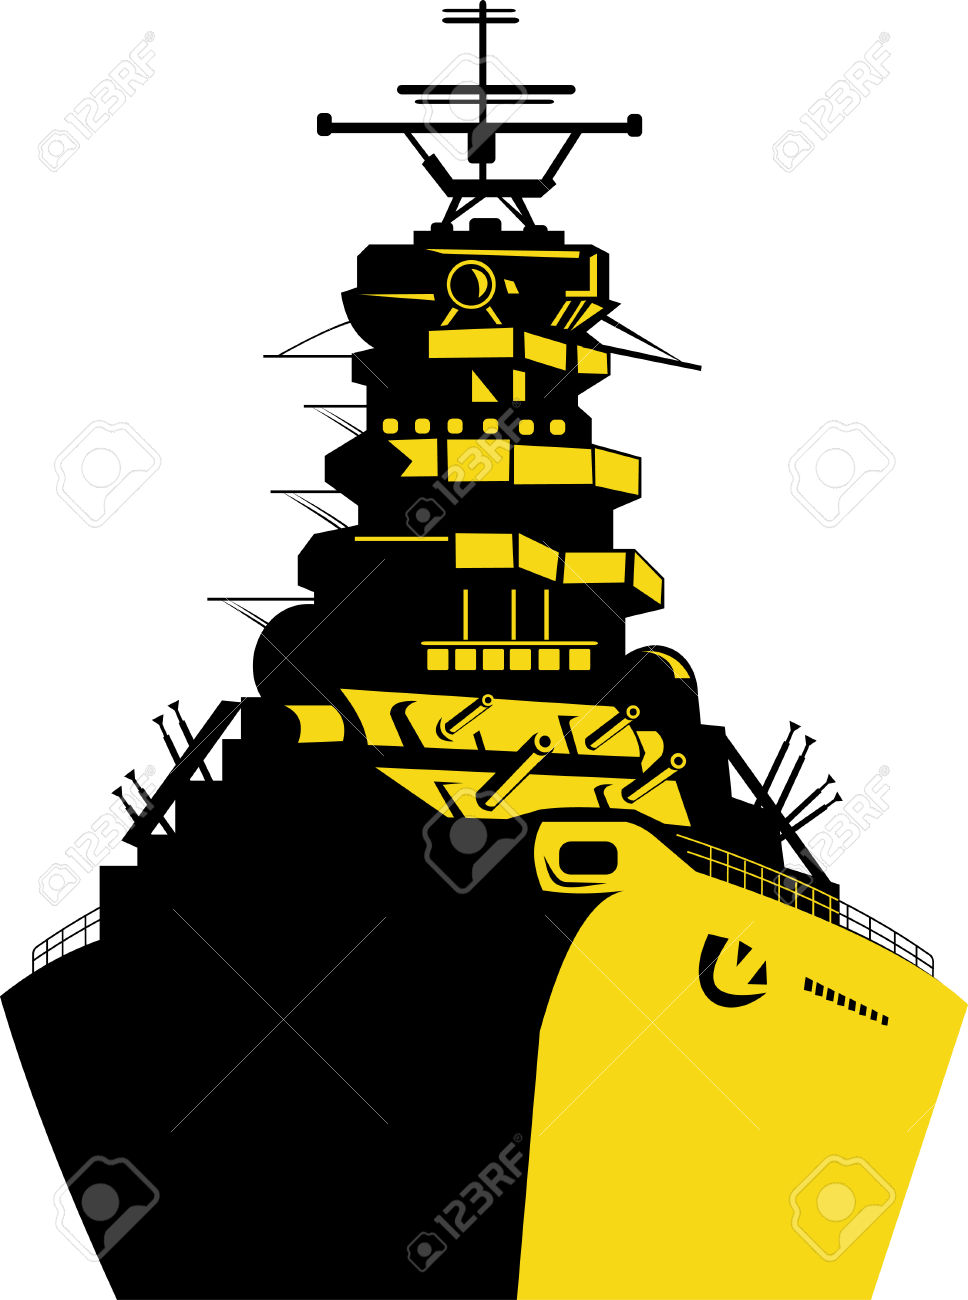 Warship With Big Guns Royalty Free Cliparts, Vectors, And Stock.